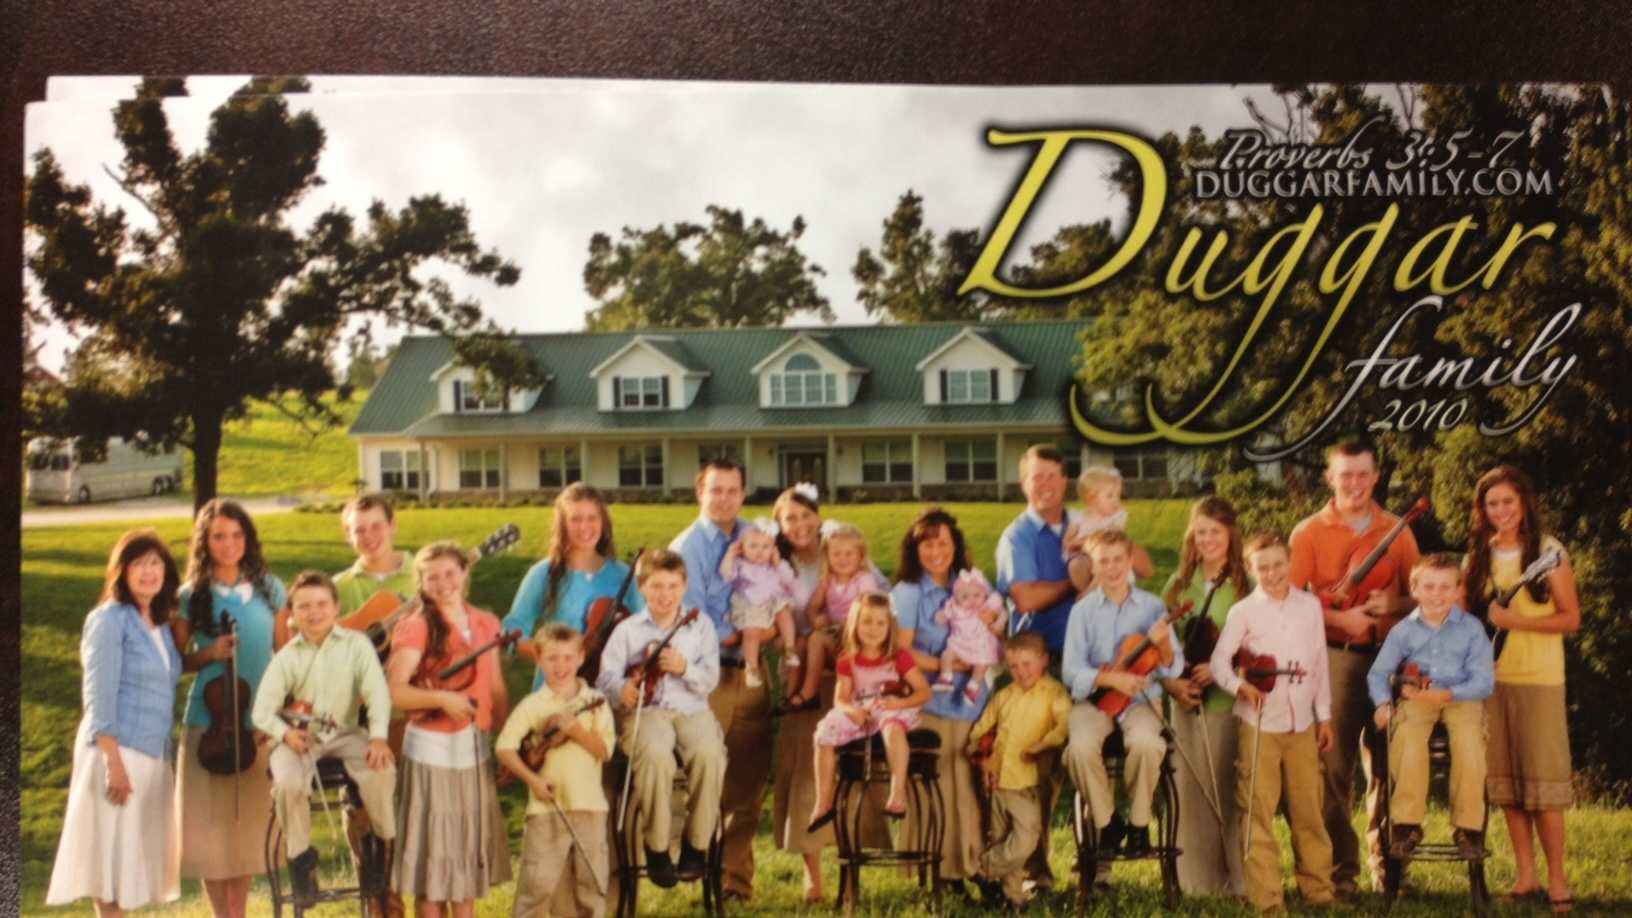 duggar family photo.JPG